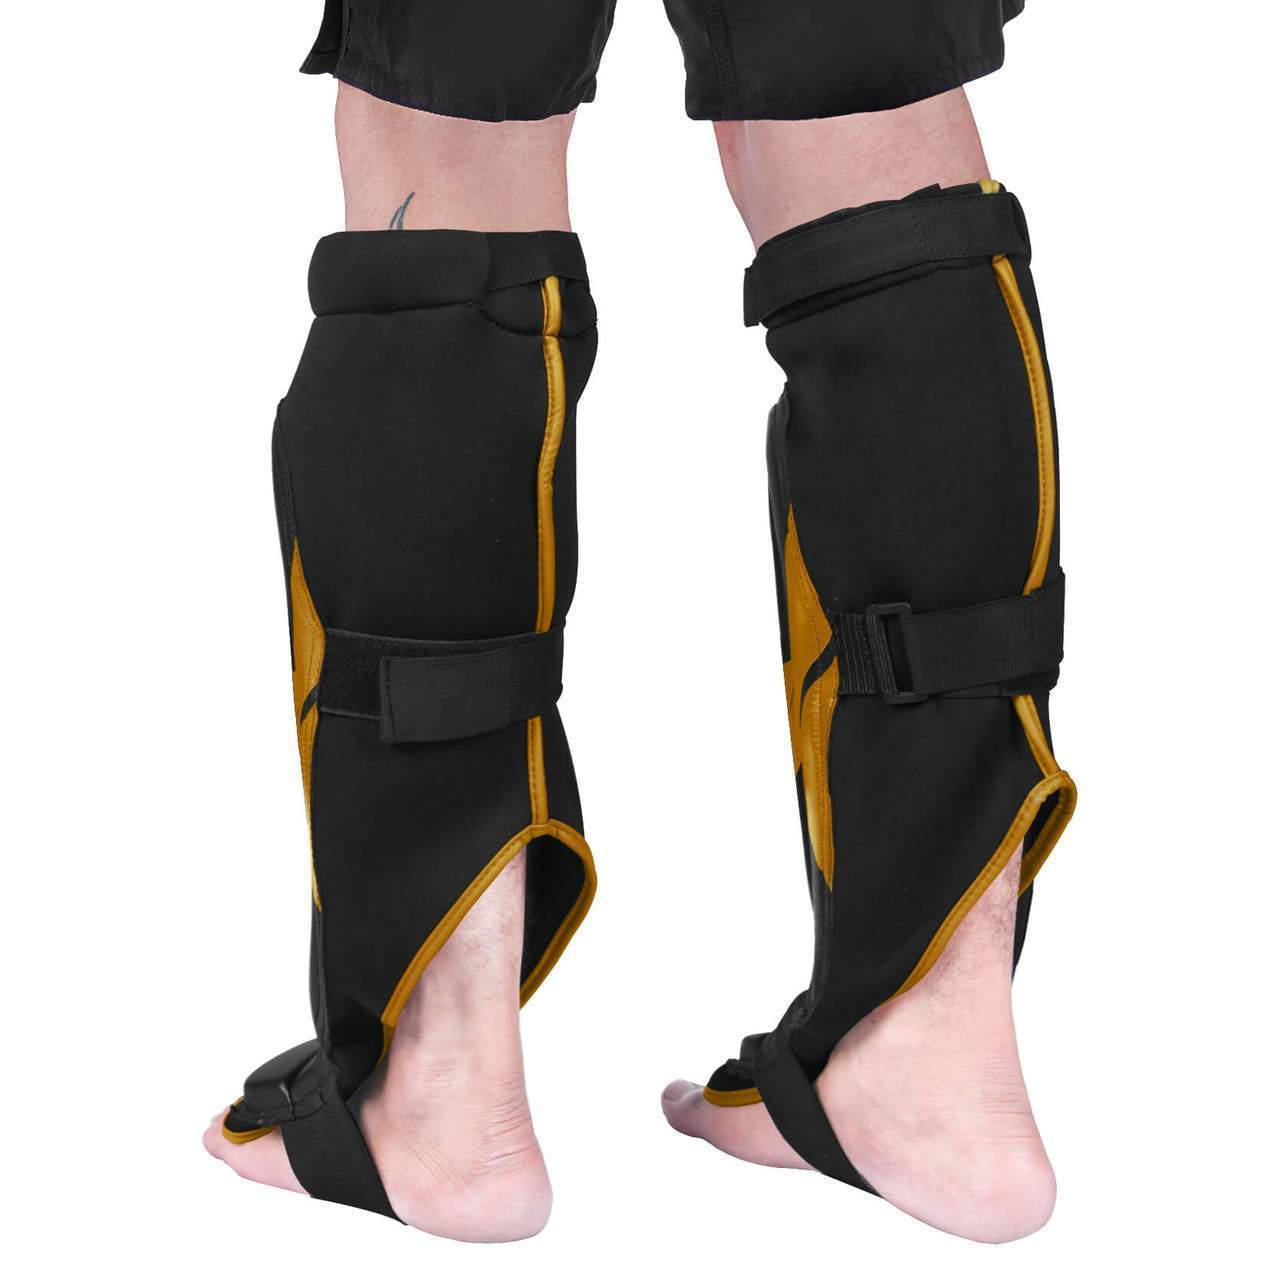 Load image into Gallery viewer, Elite Sports Star Series Black/Gold MMA Shin Guards